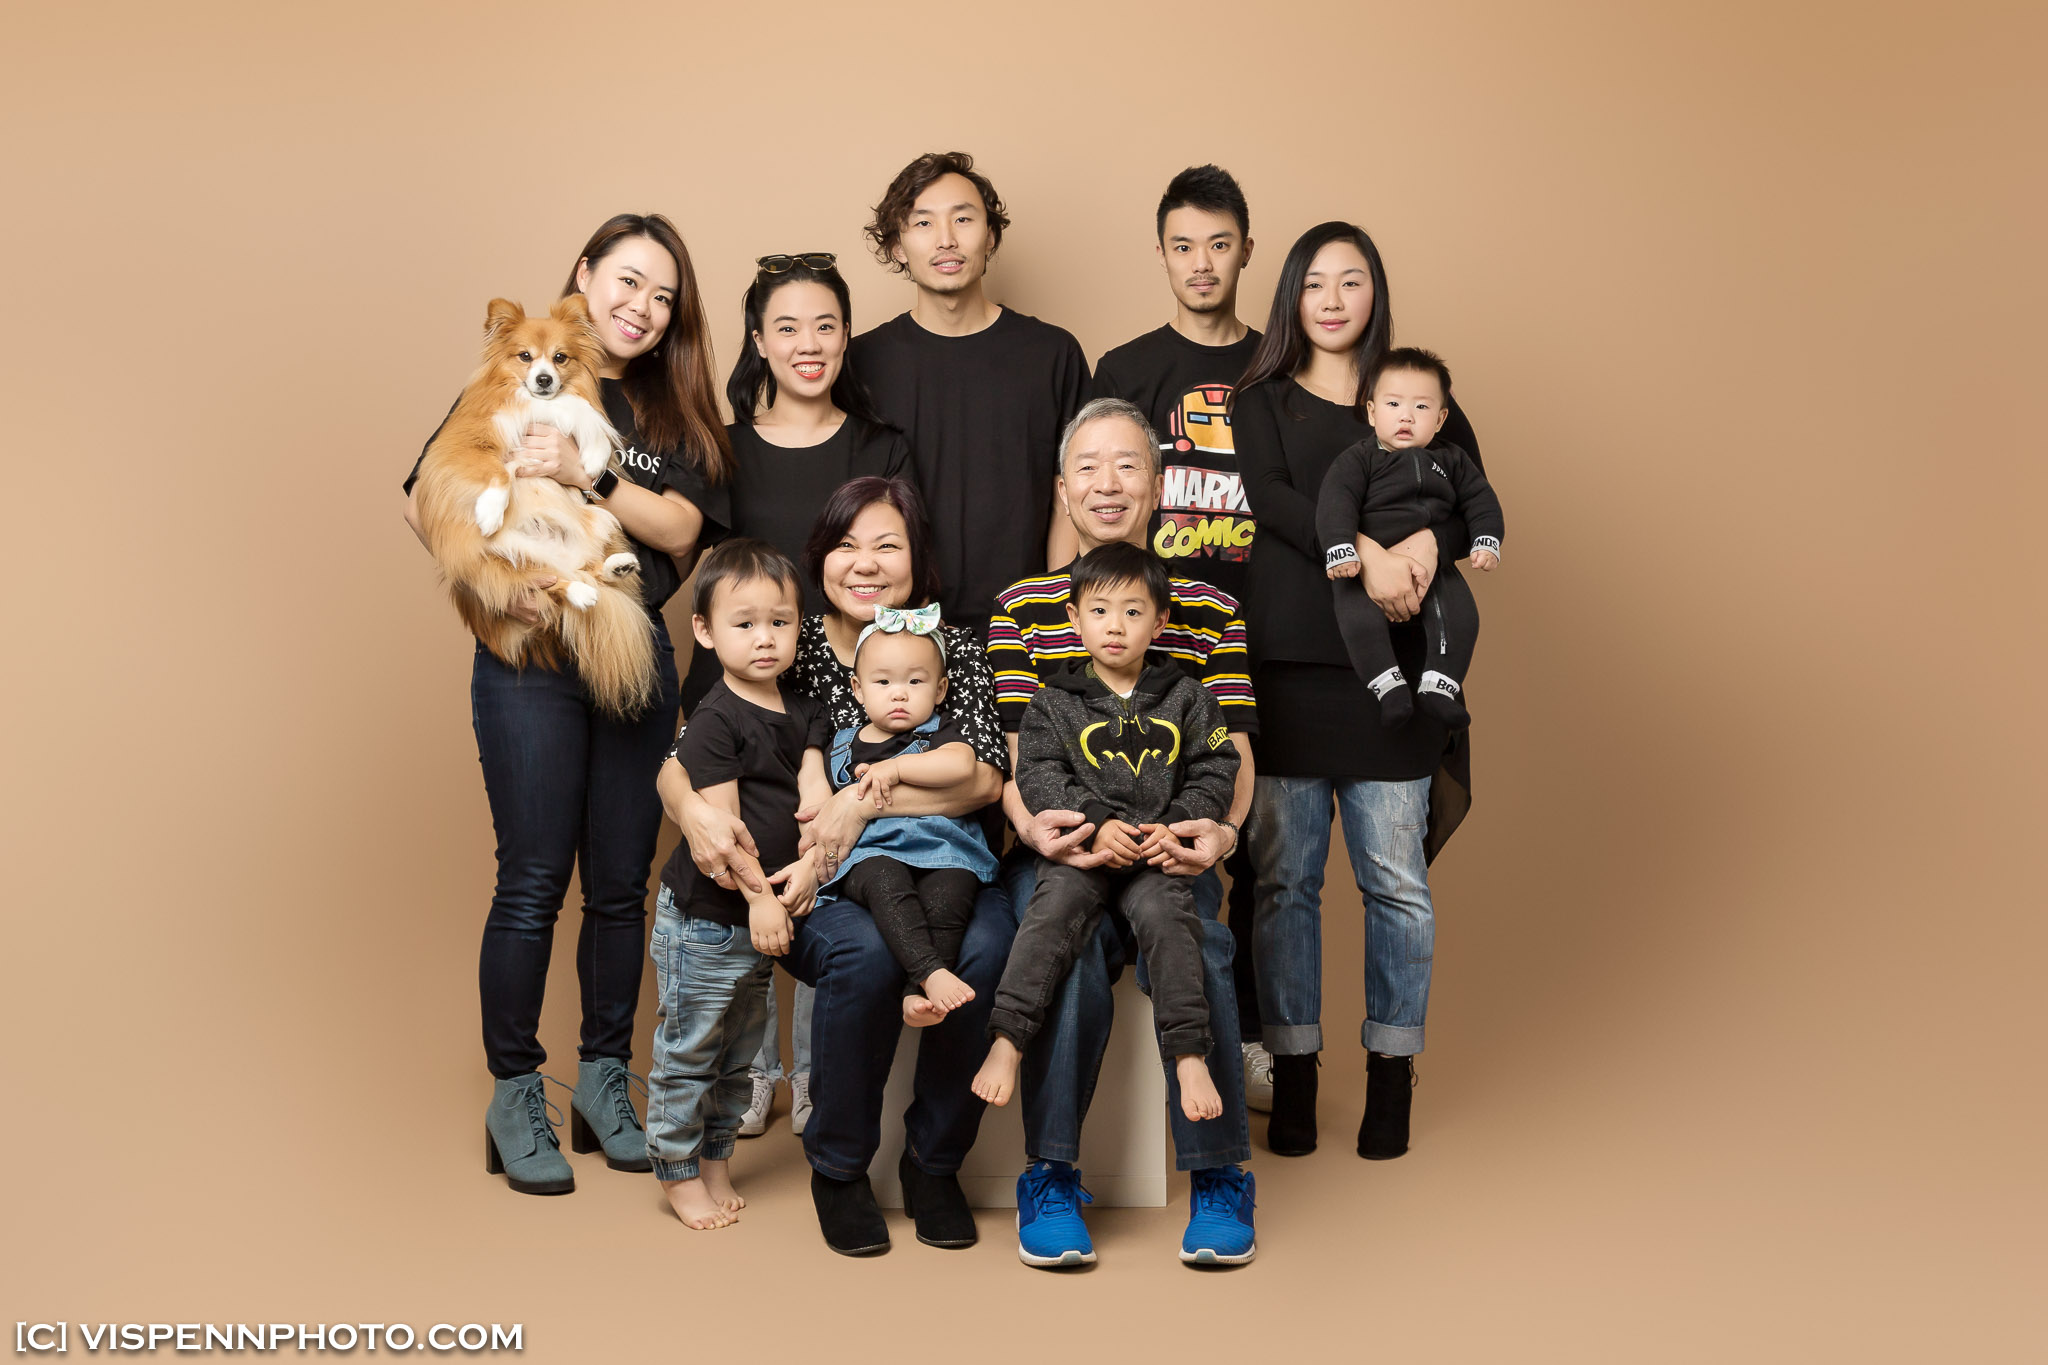 Melbourne Newborn Baby Family Photo BaoBao VISPENN 墨尔本 儿童 宝宝 百天照 满月照 孕妇照 全家福 KIDS ChristyHau 1011 VISPENN